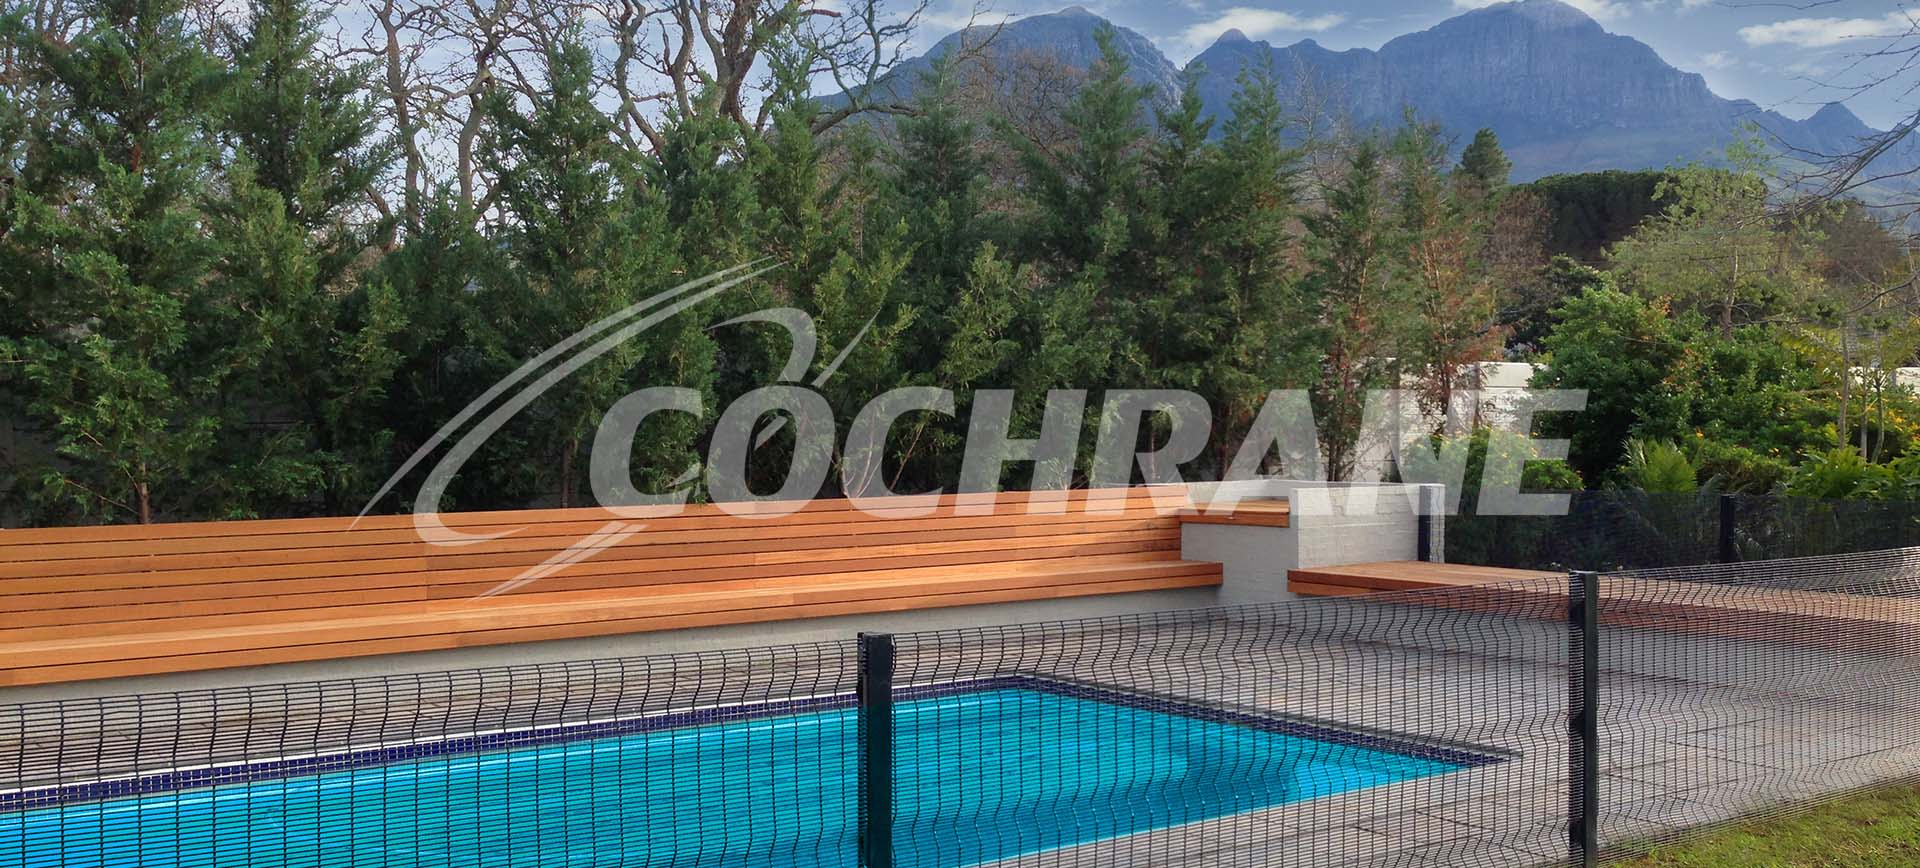 Pool Fence Cochrane Clearvu Invisible Wall Worlds Only Design Inspired